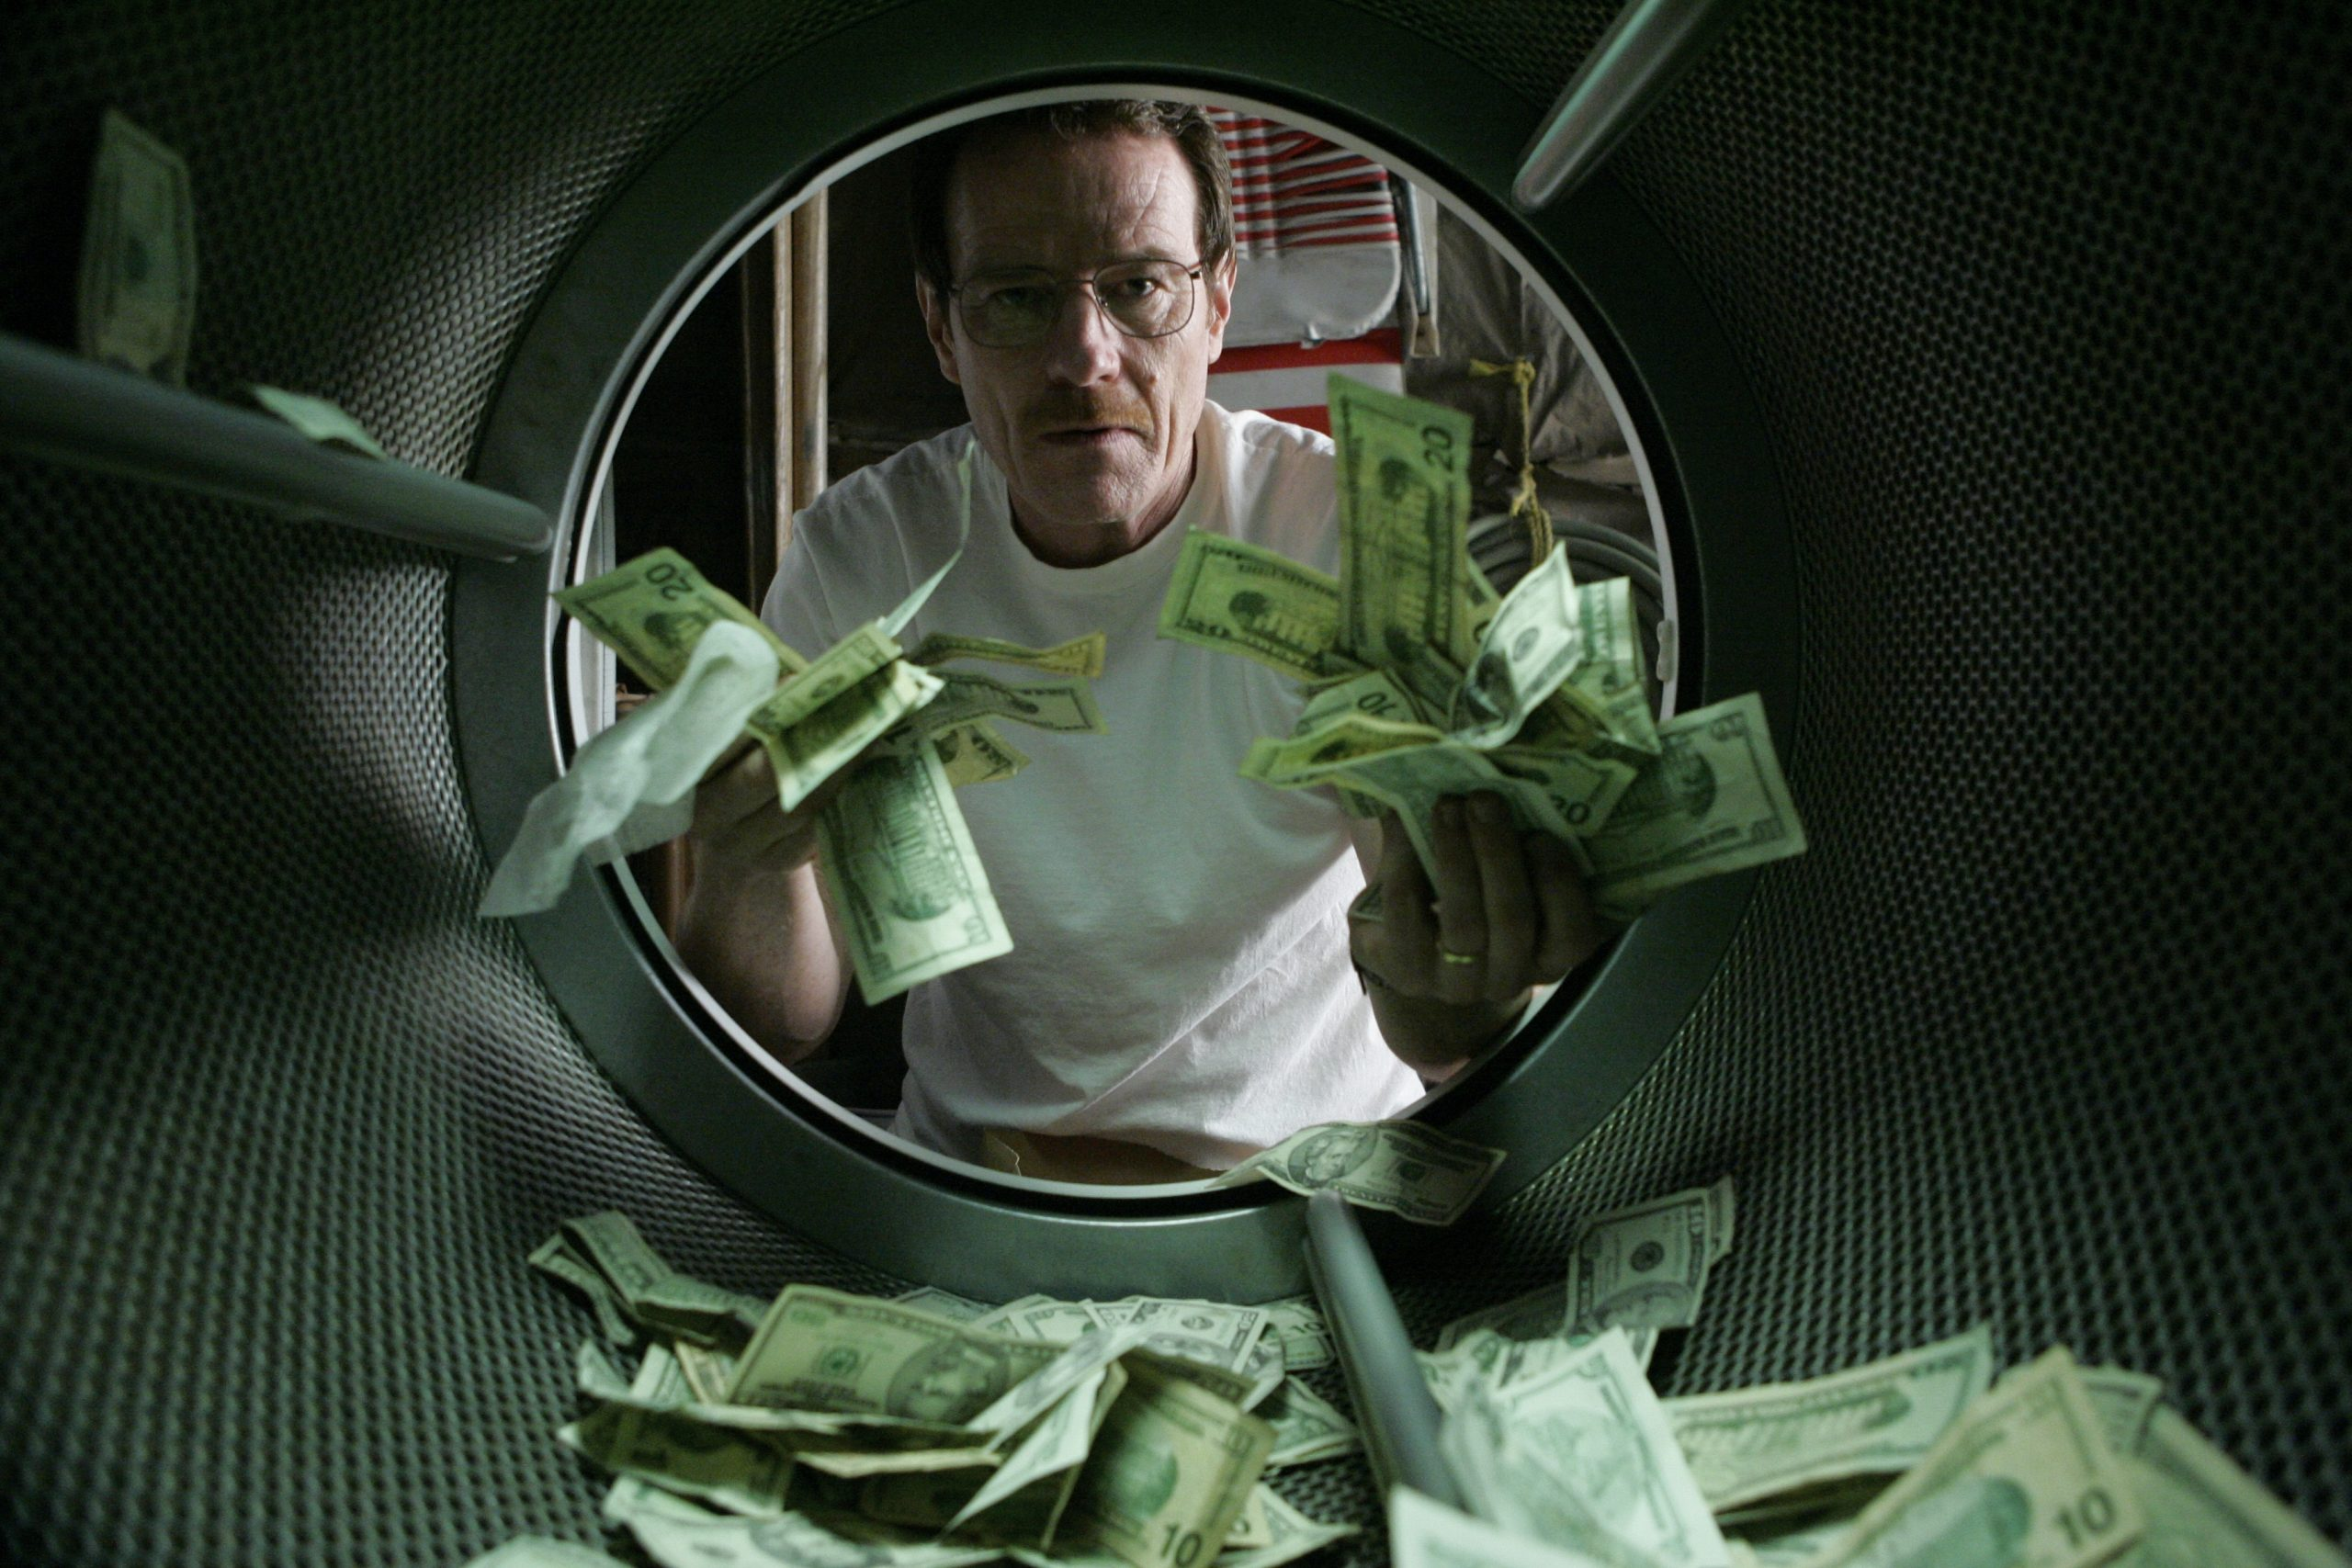 A man is standing in front of a washing machine which contains banknotes